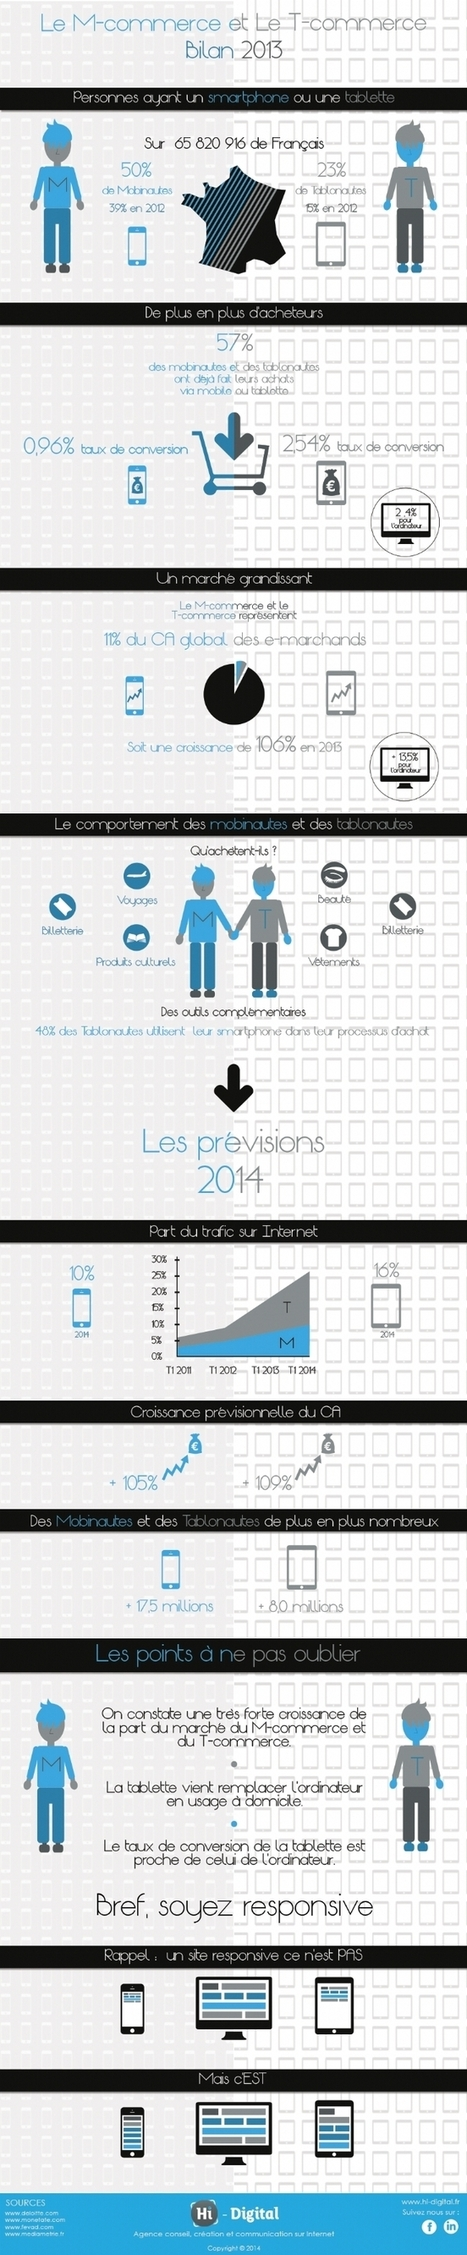 Le M-commerce et le T-commerce en 2013 | Commerce mobile | Scoop.it